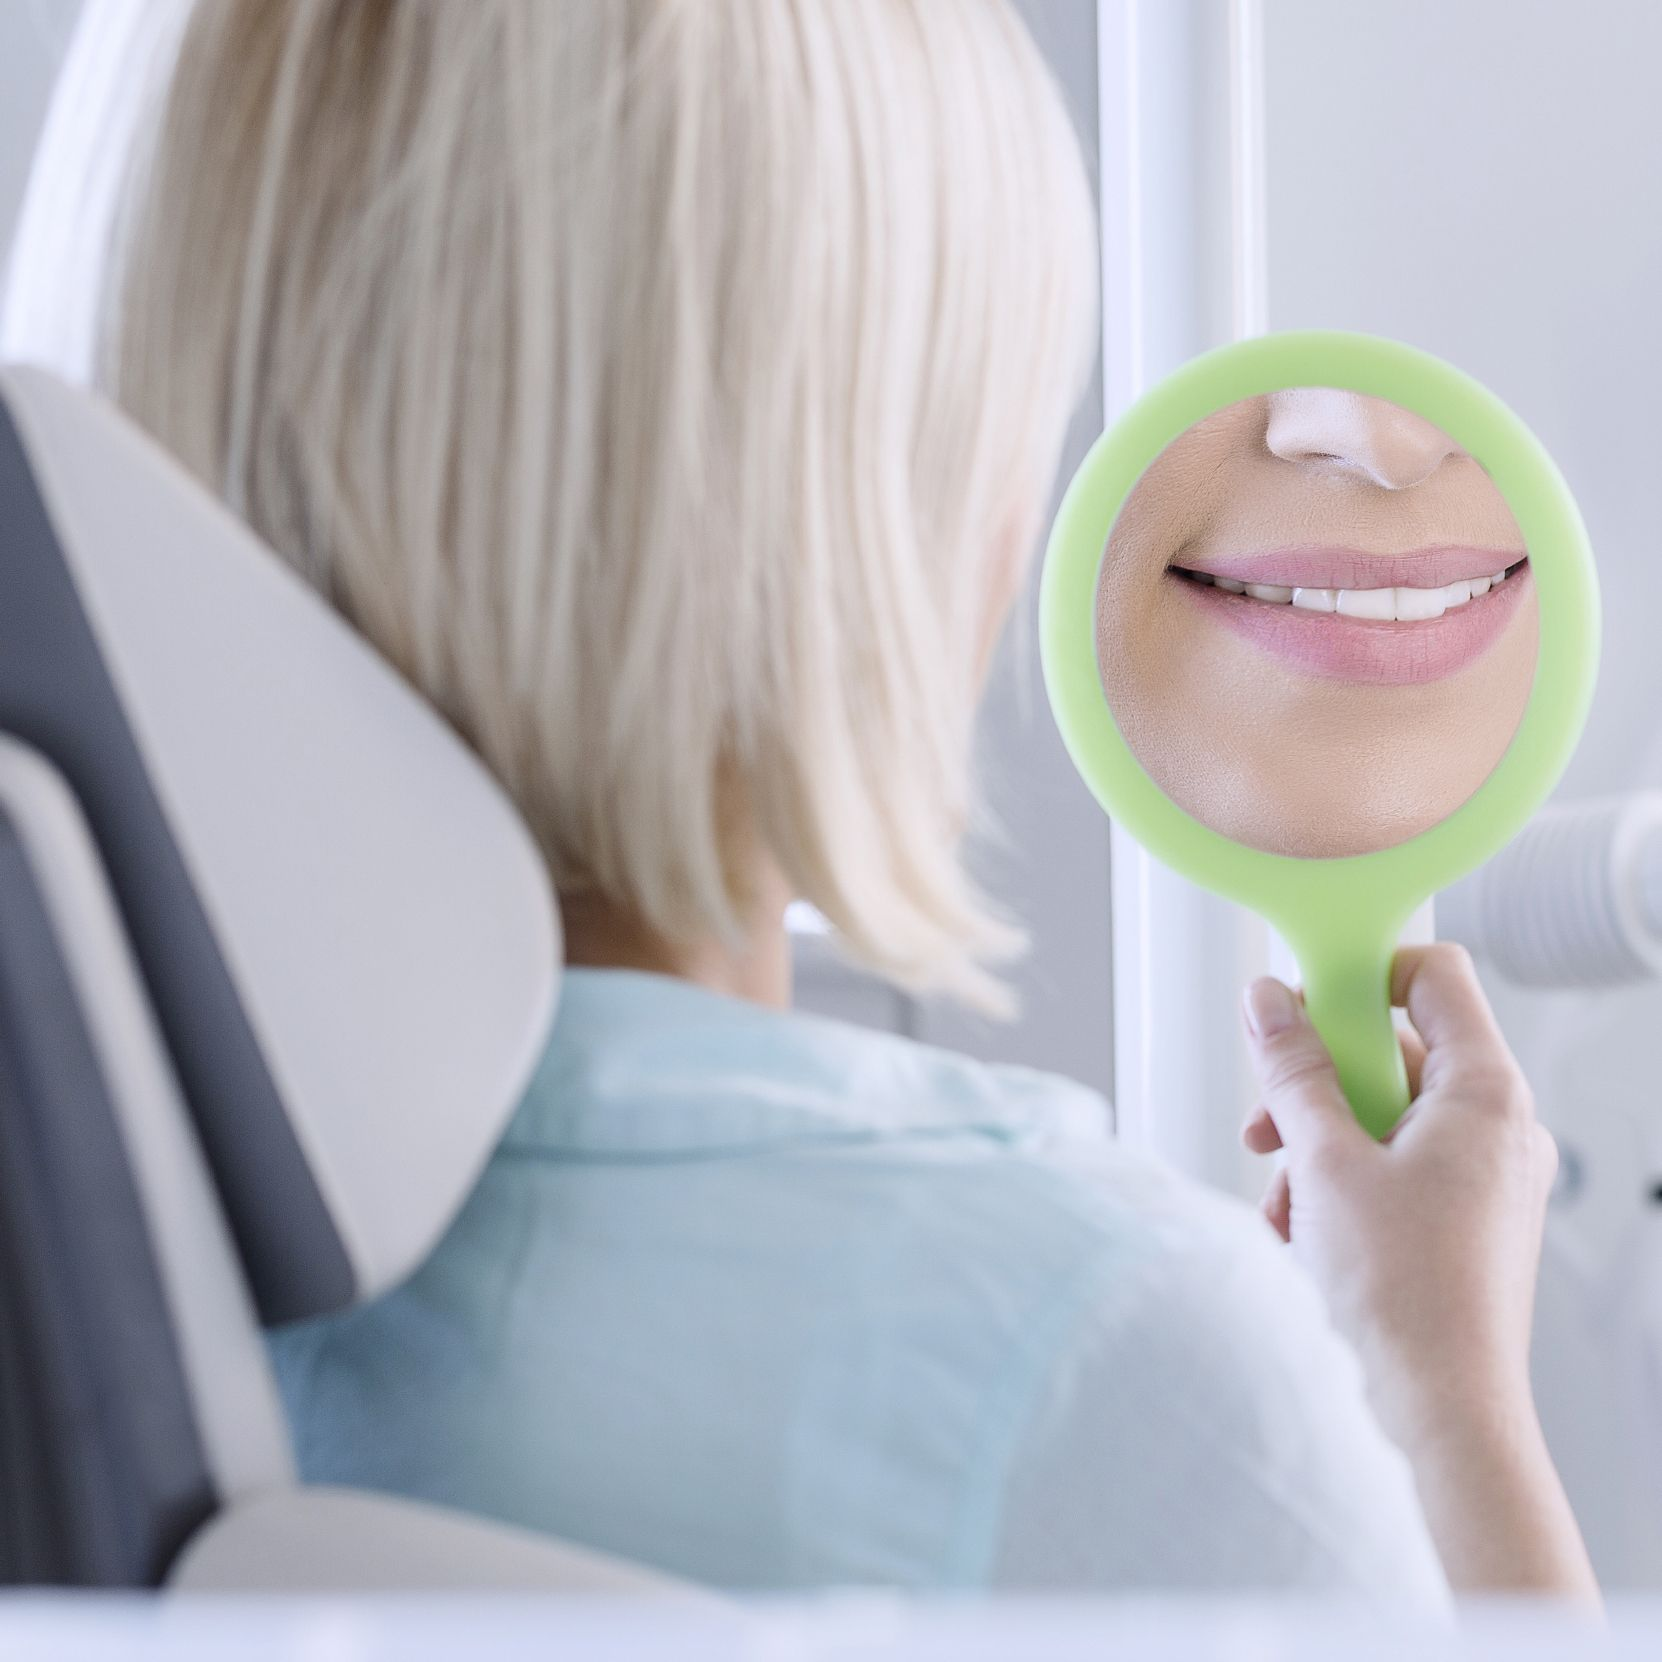 A healthy, white smile in a mirror